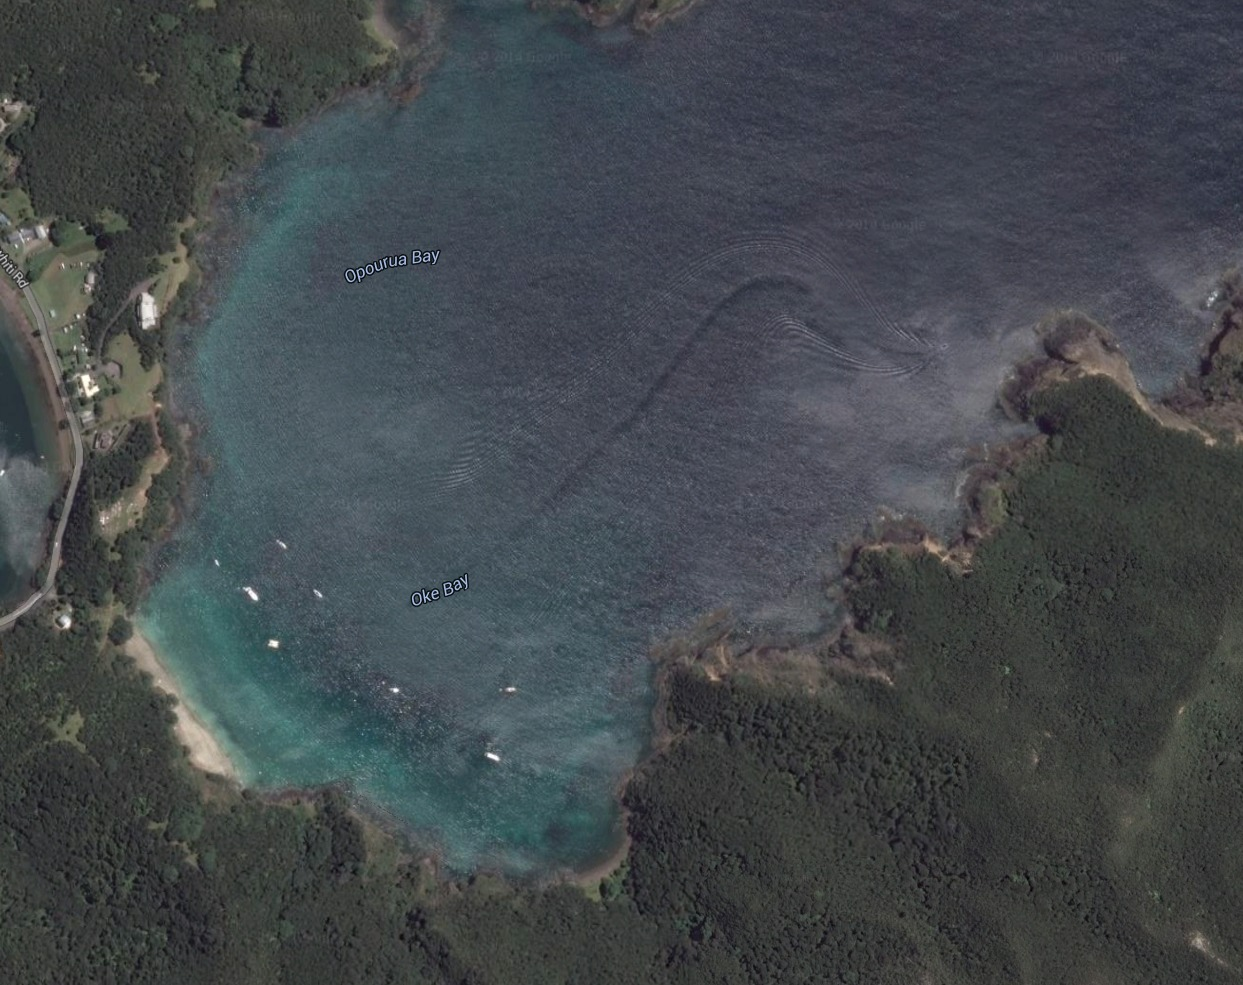 Mysterious creature spotted in Google Earth image - AOL News